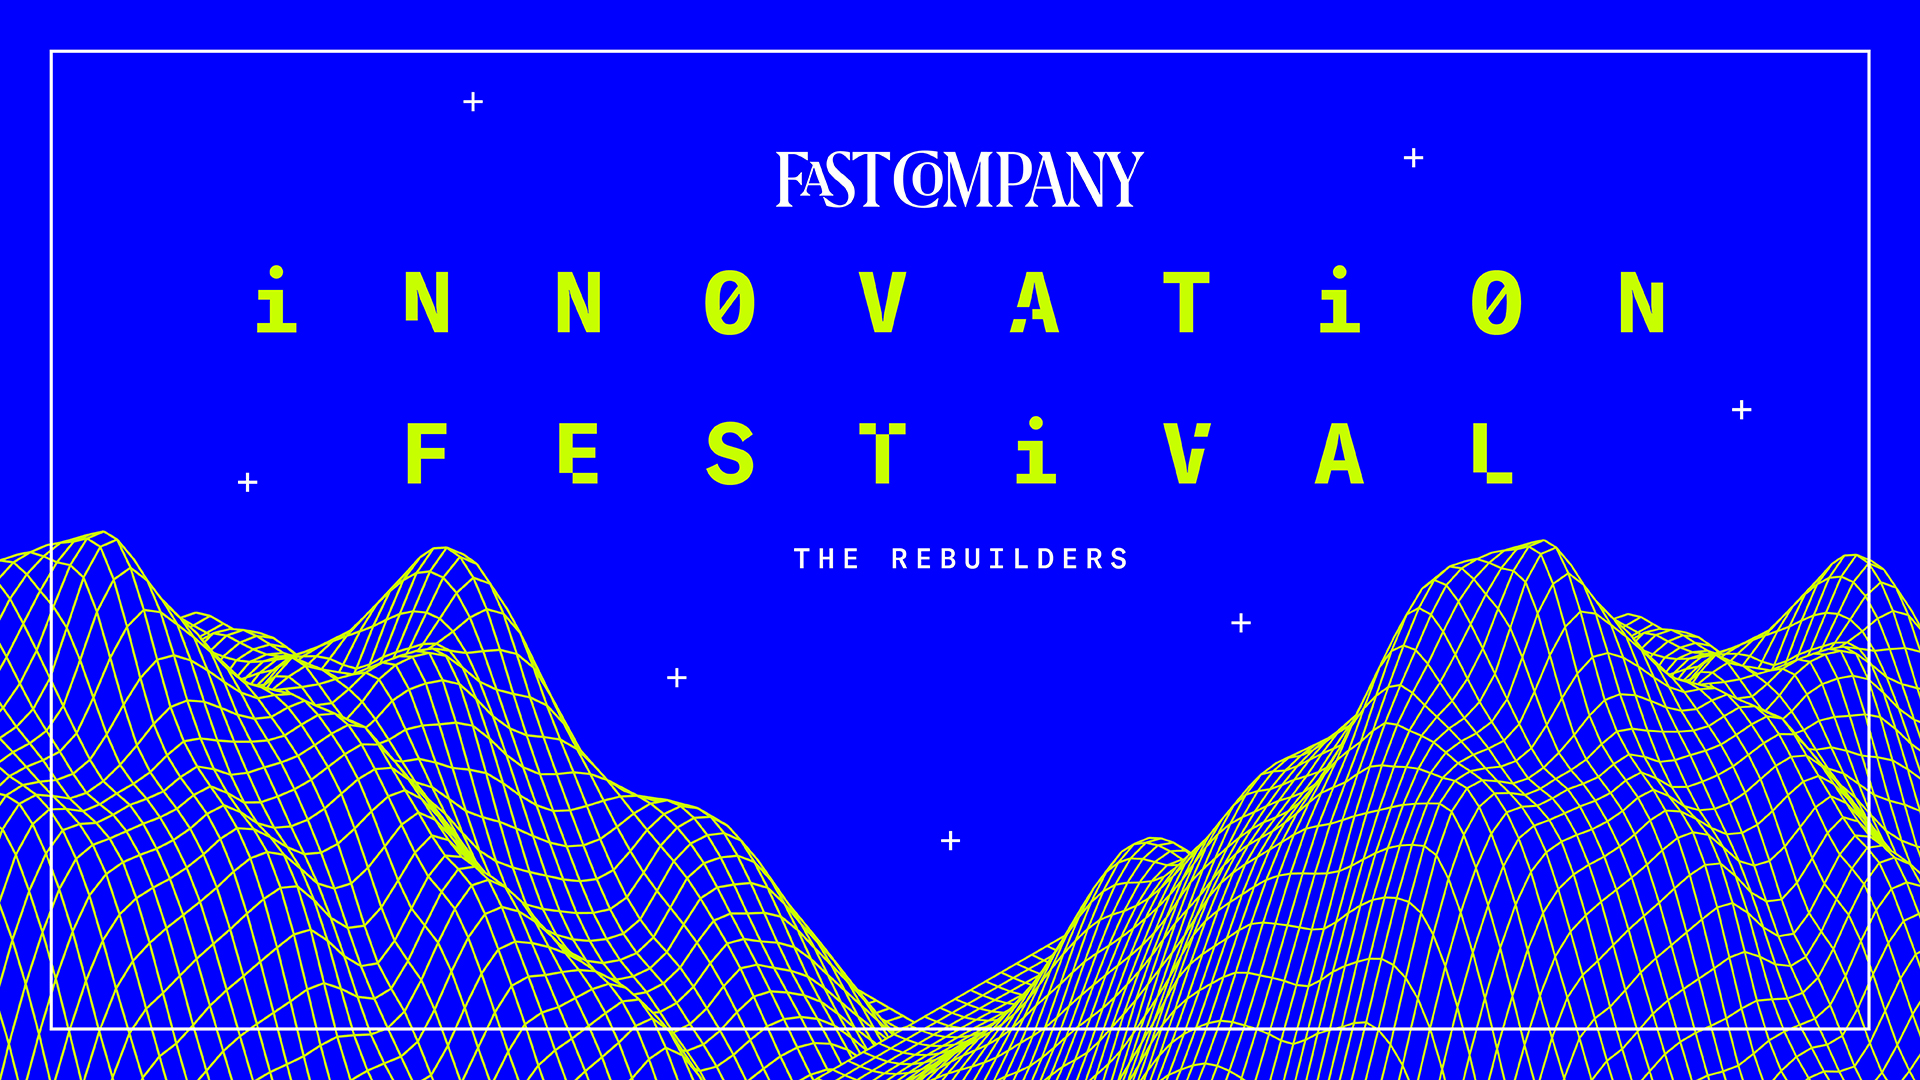 Fast Company announces details of seventh annual innovation festival